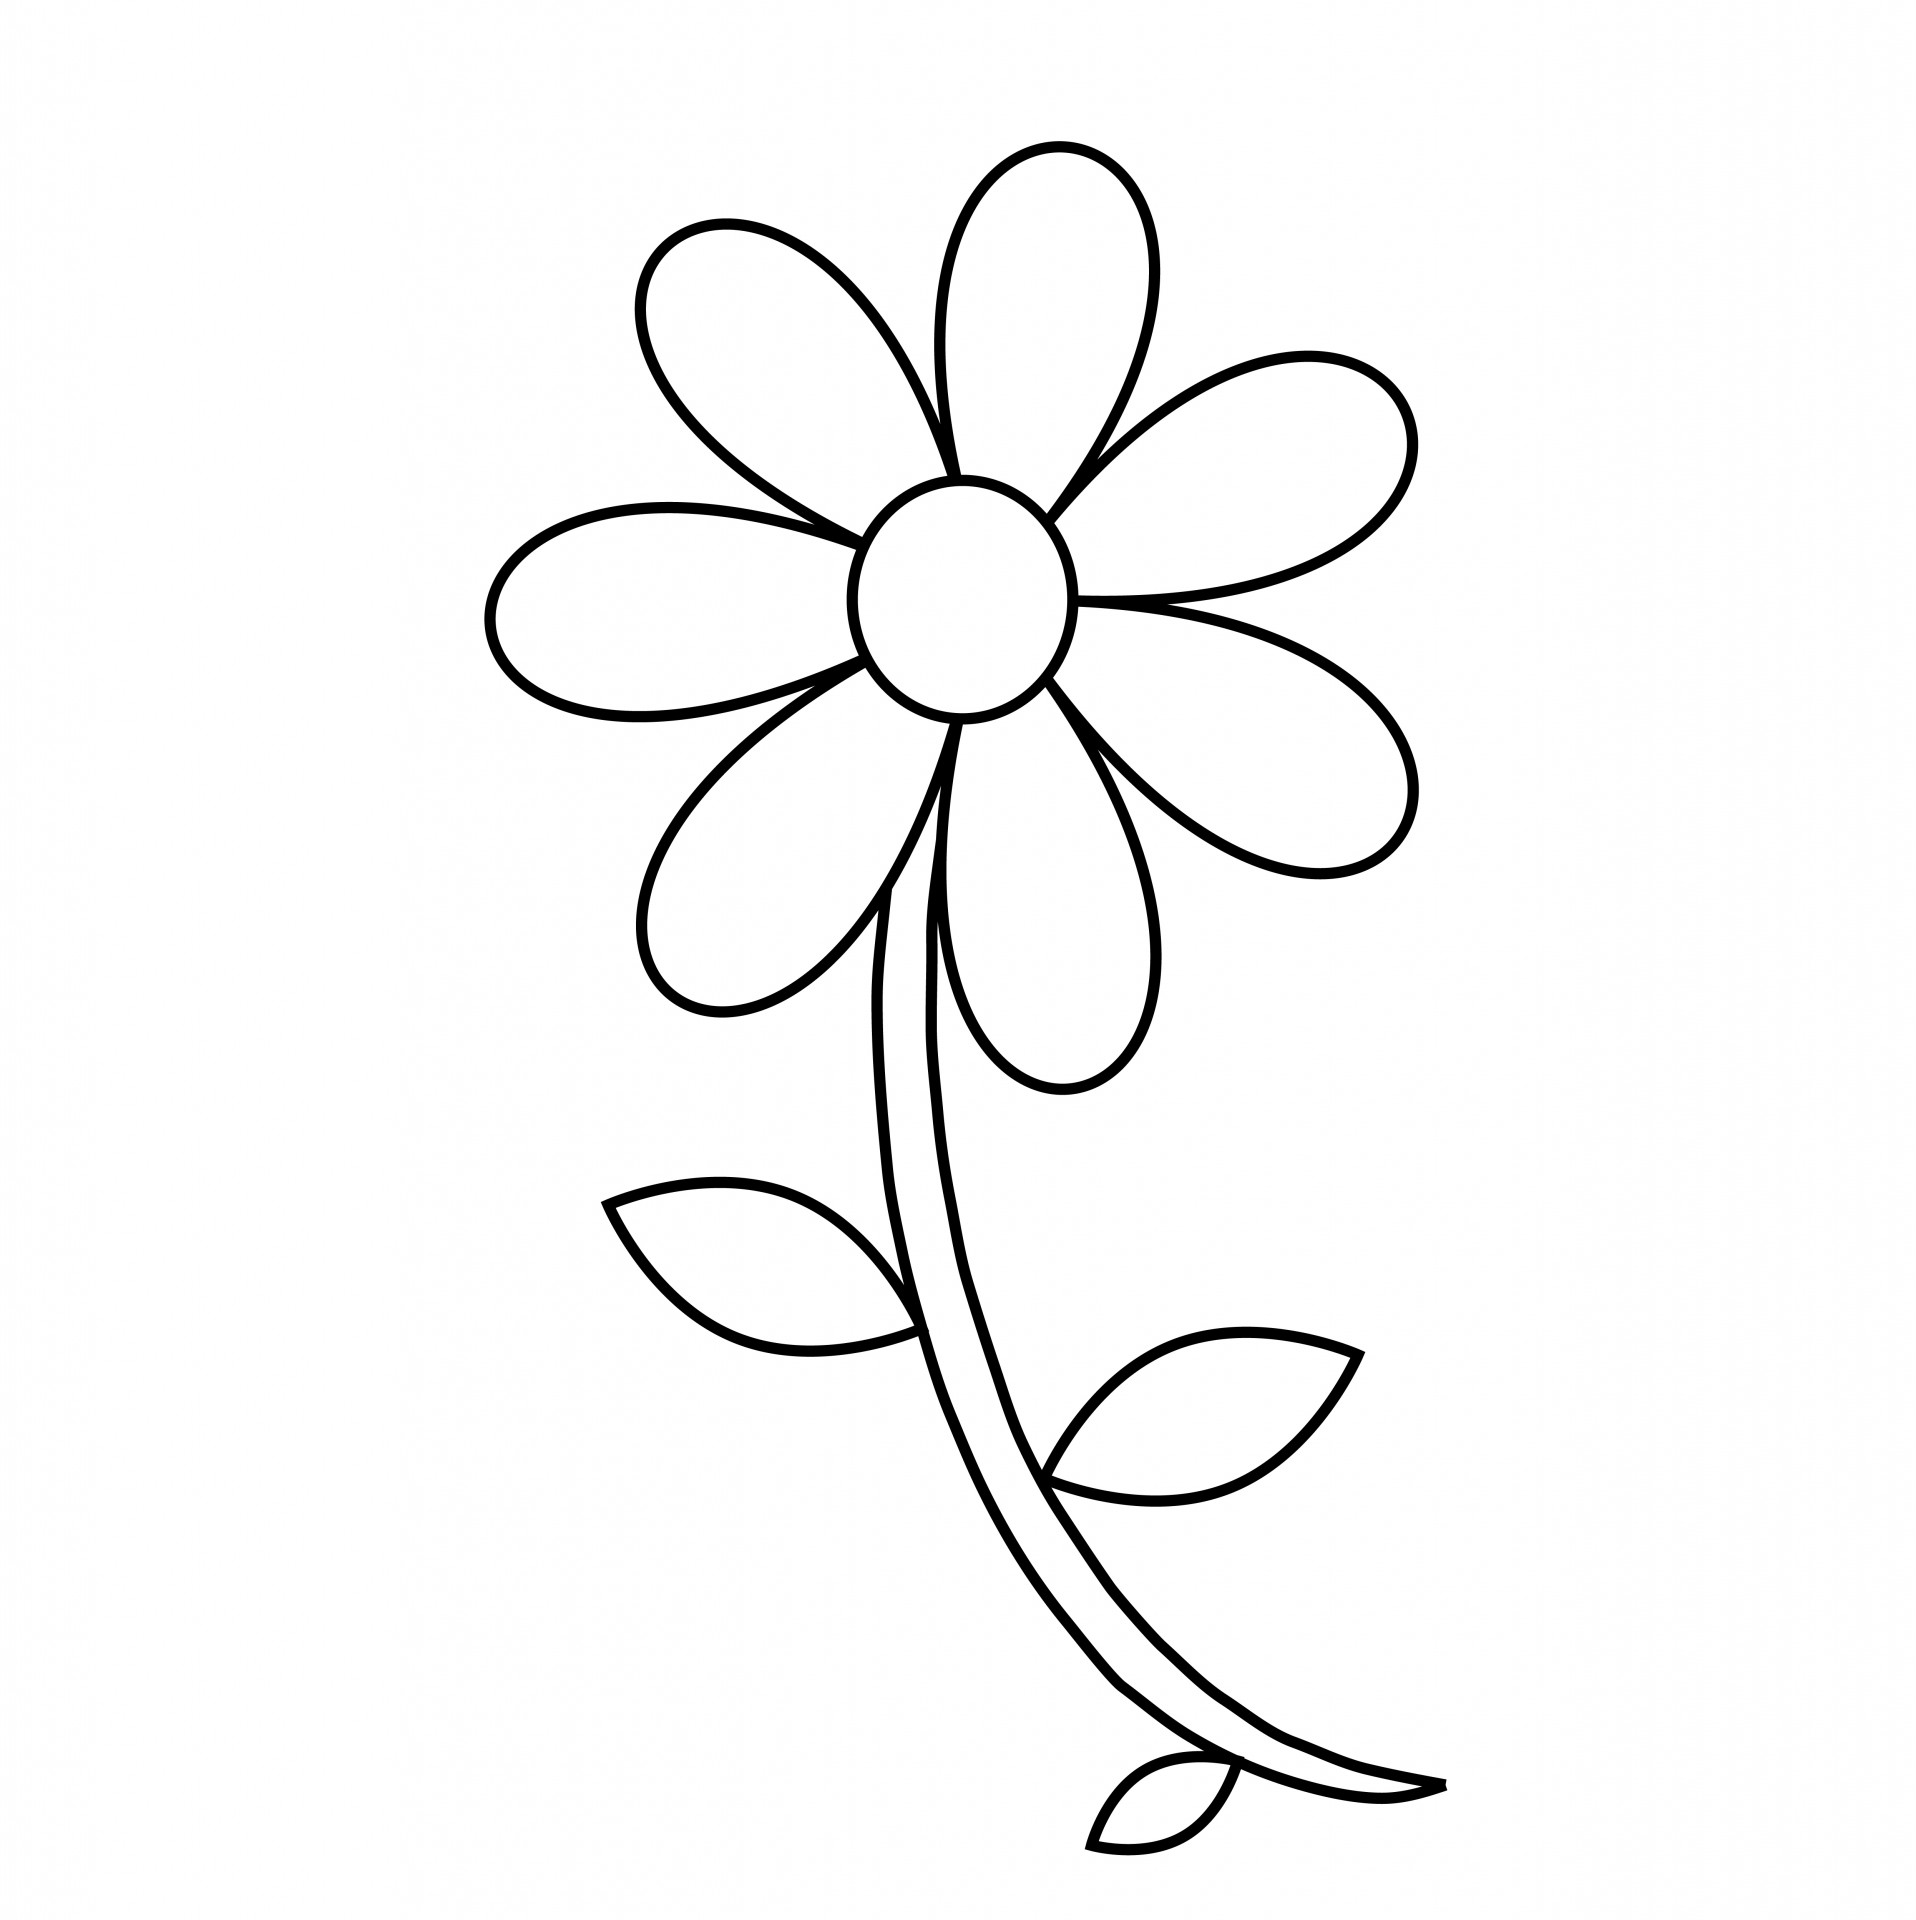 Outline of flowers pictures clipground showing post media for cartoon flower outline mightylinksfo